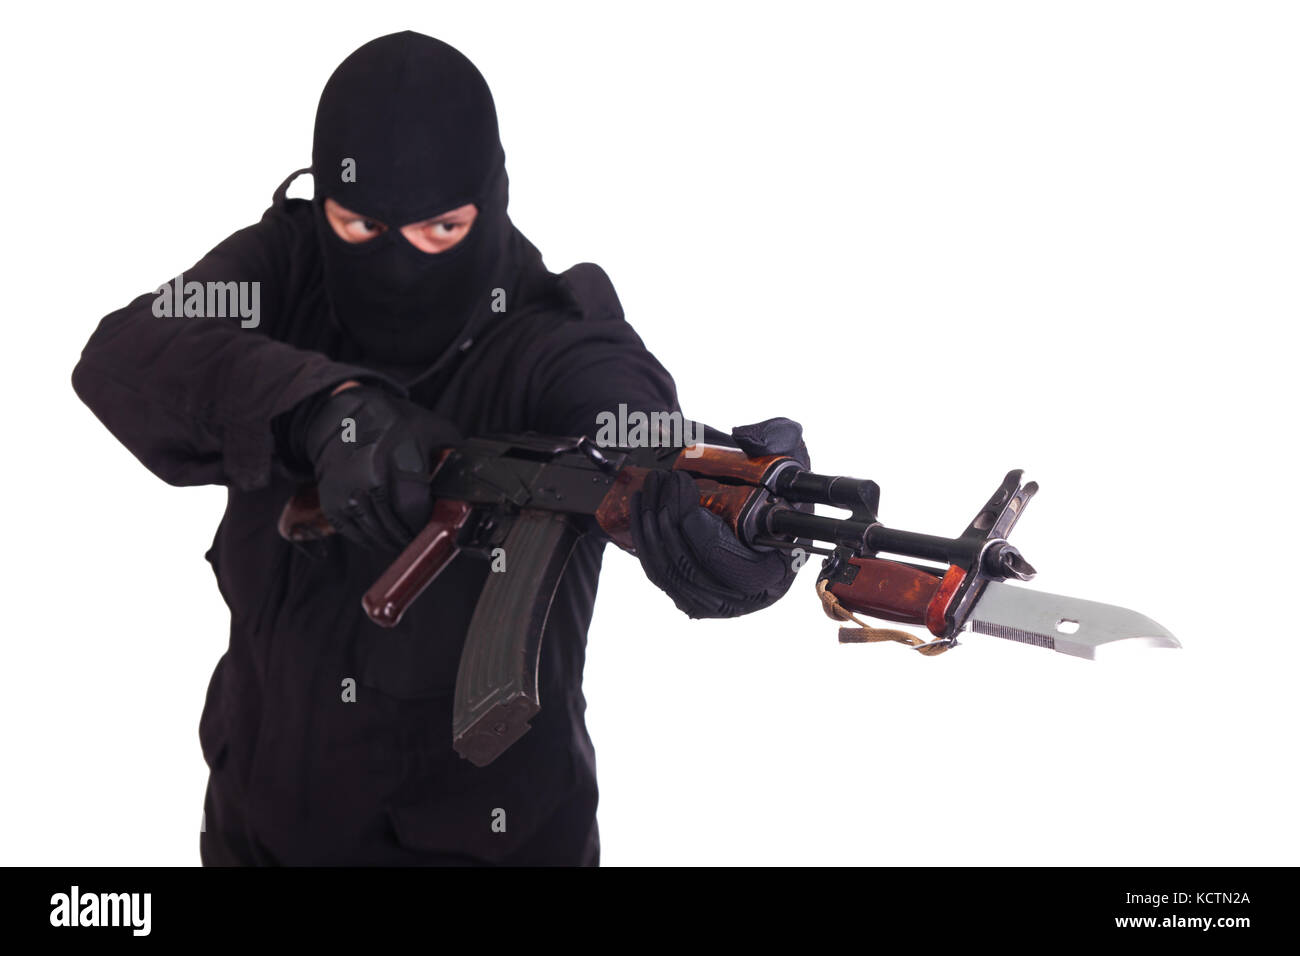 man in black uniform and mask with AK 47 gun - Stock Image